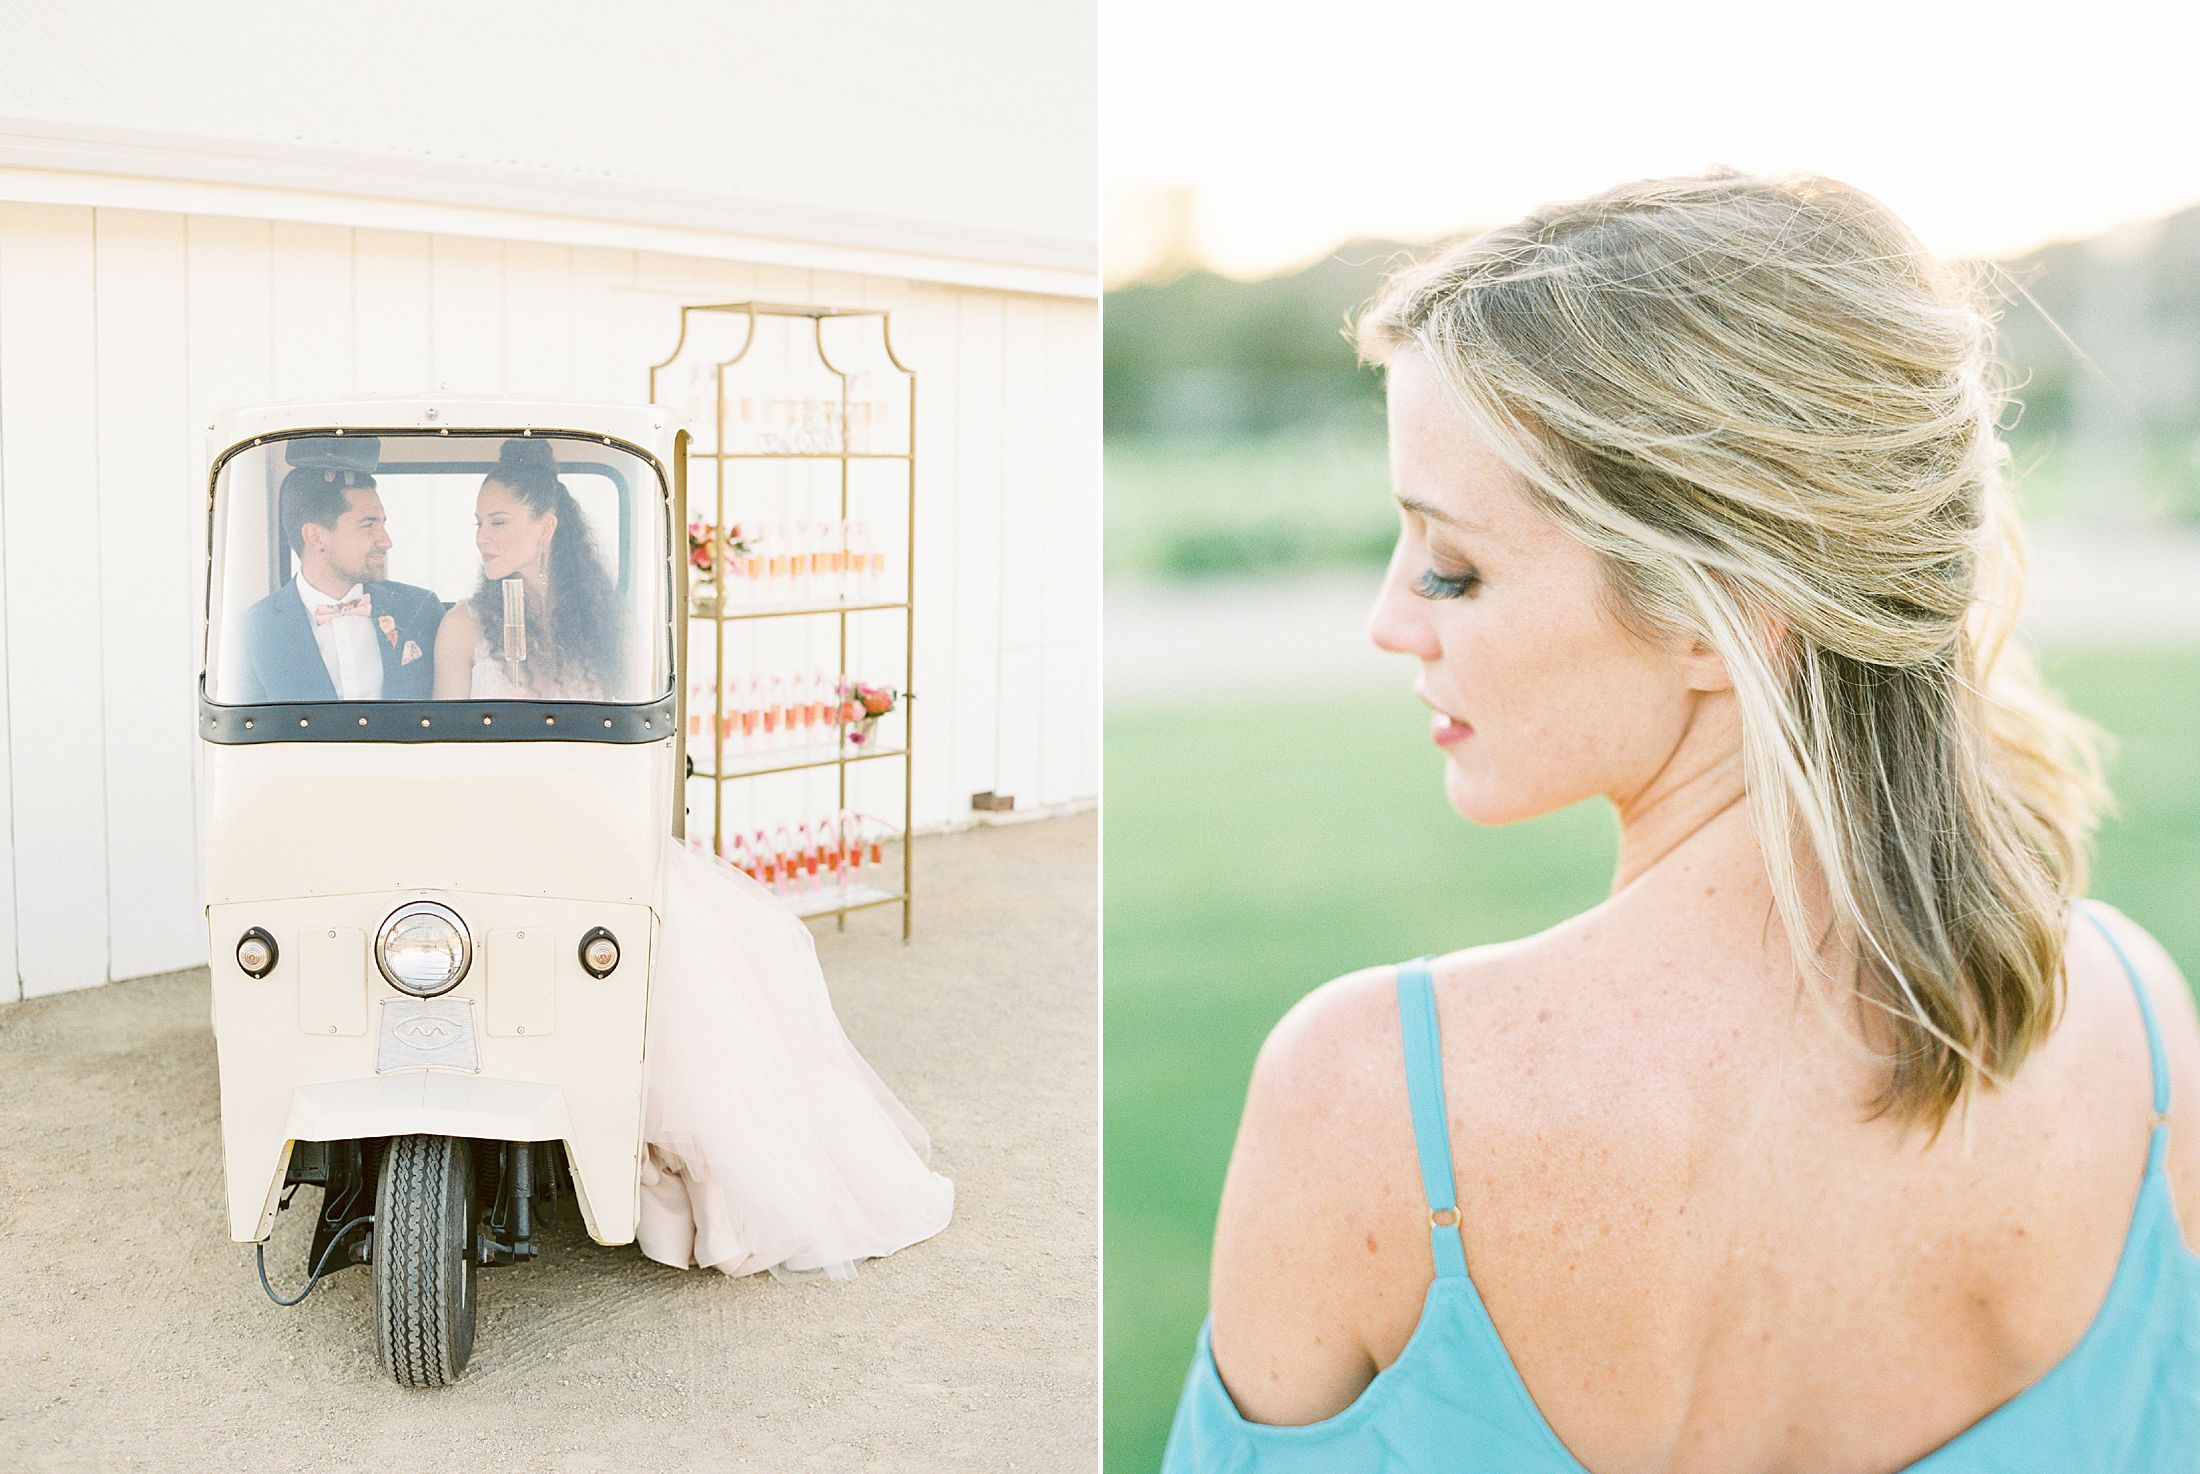 White Barn Edna Valley Wedding Inspiration - San Luis Obispo Wedding - Featured on Green Wedding Shoes - Ashley Baumgartner - FM Events SLO - SLO Wedding Photographer_0021.jpg